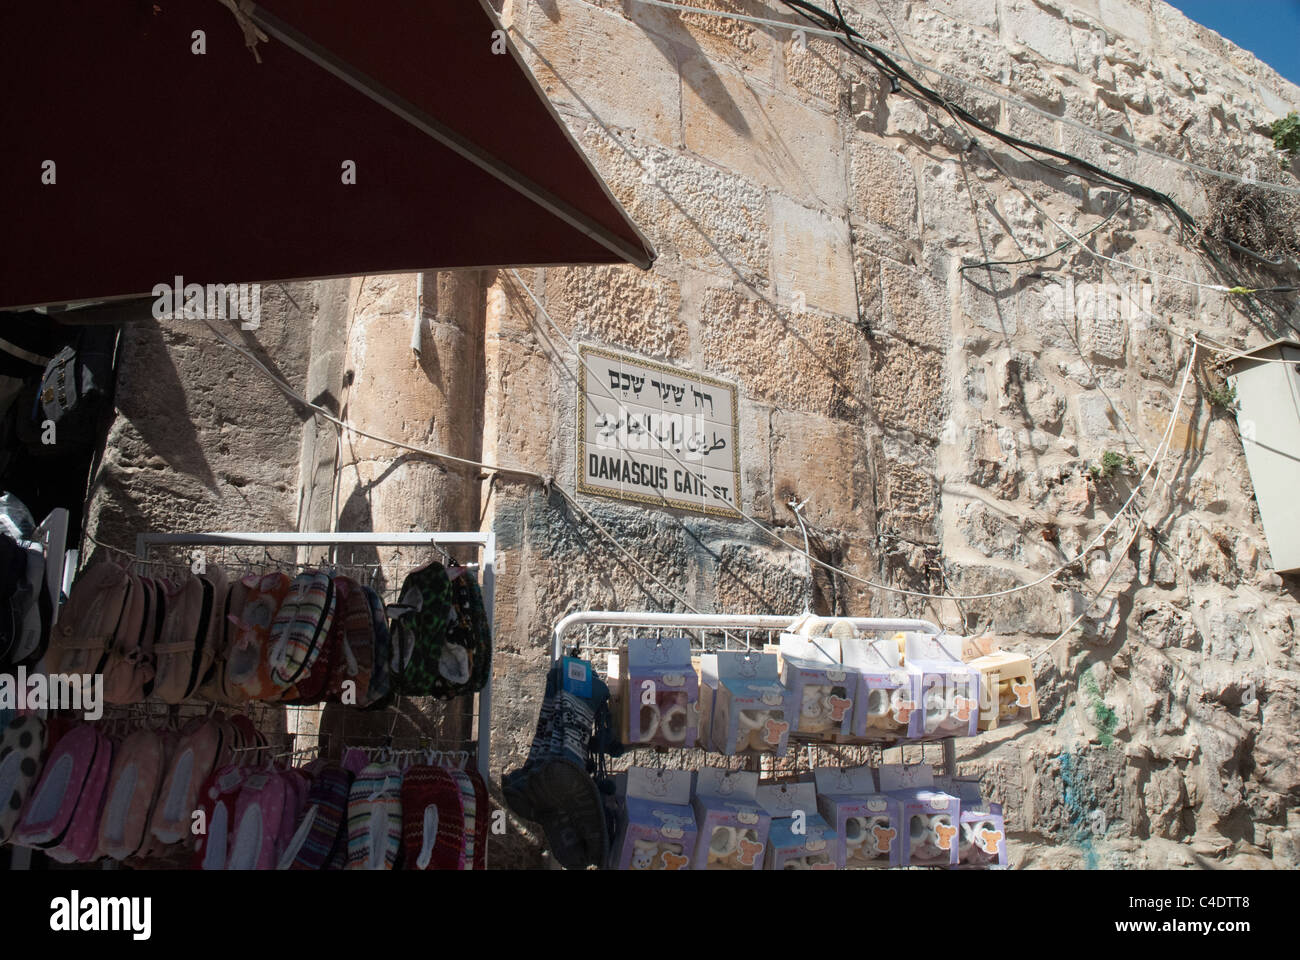 Jerusalem is a holy city to the three major Abrahamic religions—Judaism, Christianity and Islam. - Stock Image